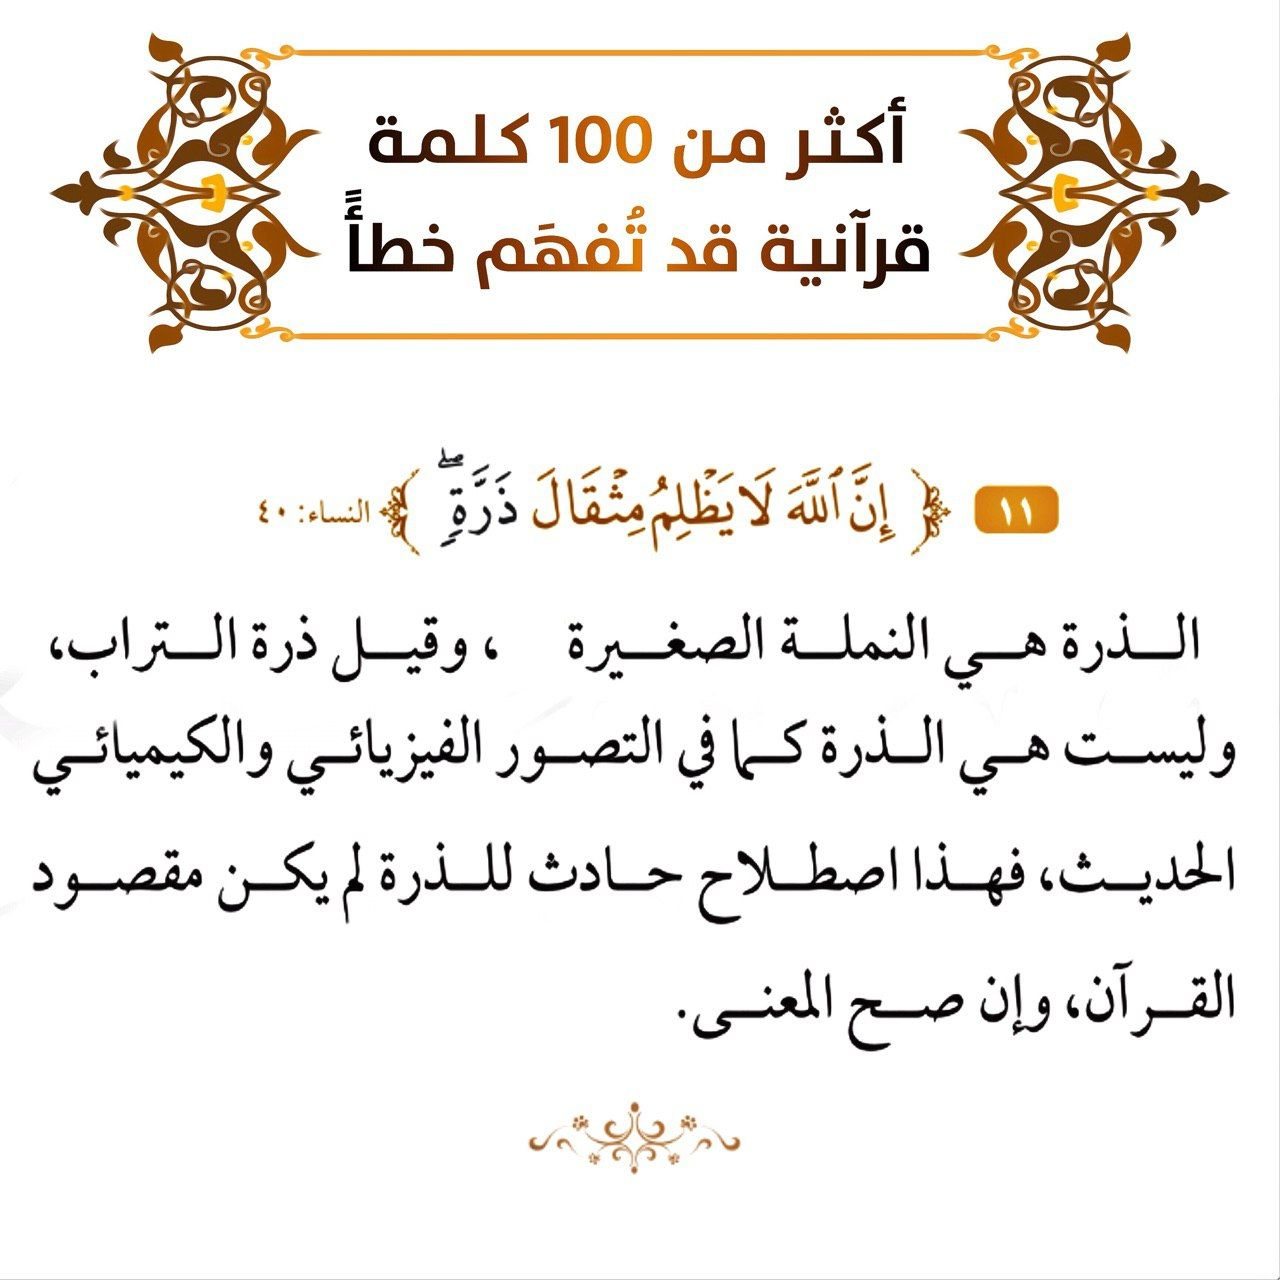 Pin By Ibrahim Abdelnour On انستا Quran Verses Cool Words Quran Quotes